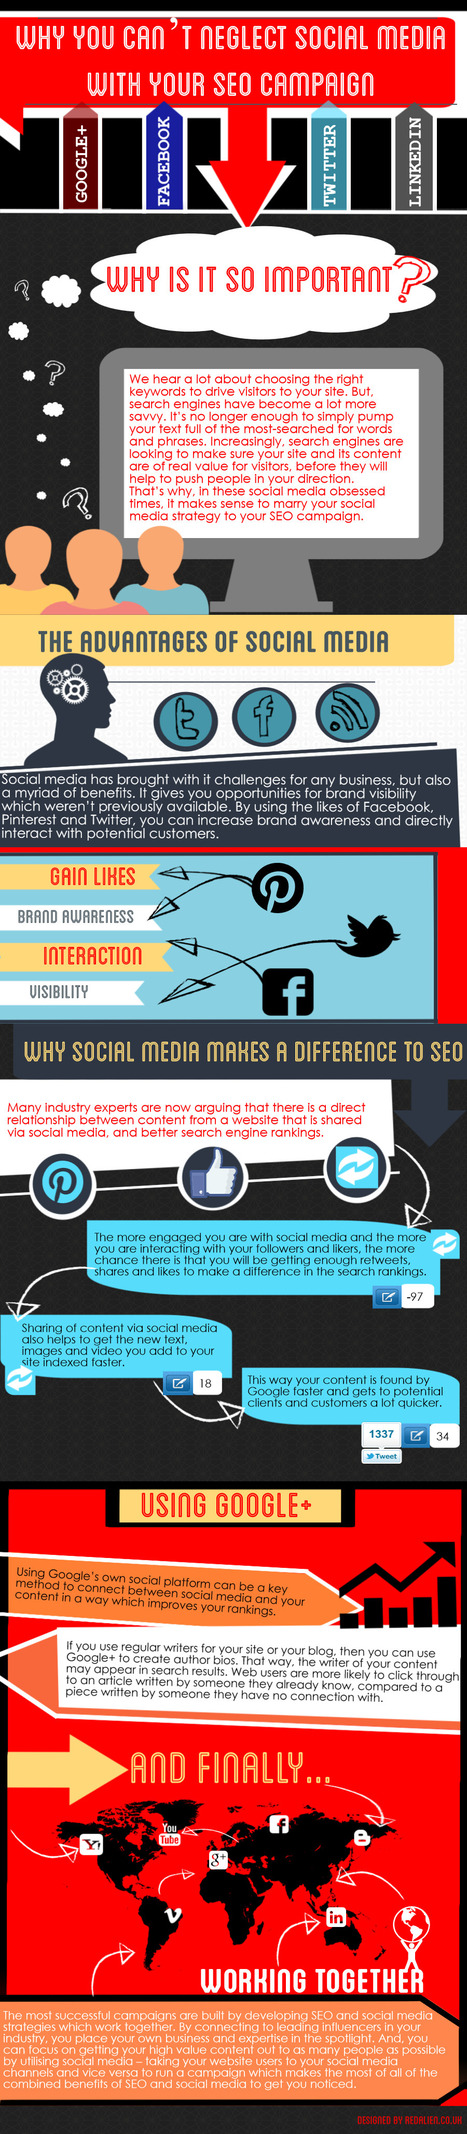 Why you can't neglect social media with SEO campaigns | creating infographics for promotion | Scoop.it